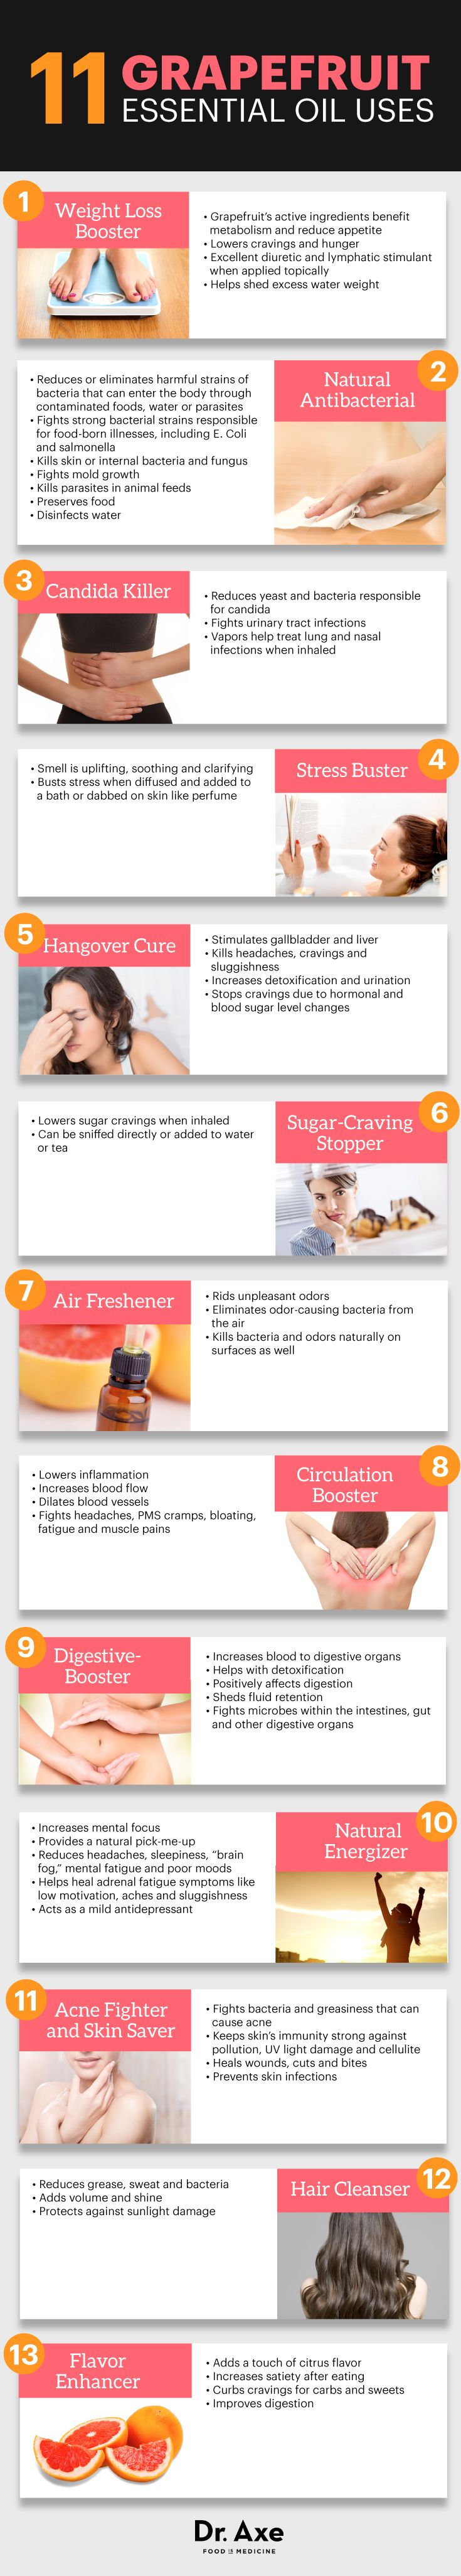 11 Grapefruit essential oil uses - Dr. Axe ~ Interested in PURE™ Essential Oils?  Let's Connect!  Email me at livegreenwithginny@gmail.com  #PURE™ #EssentialOils #Melaleuca